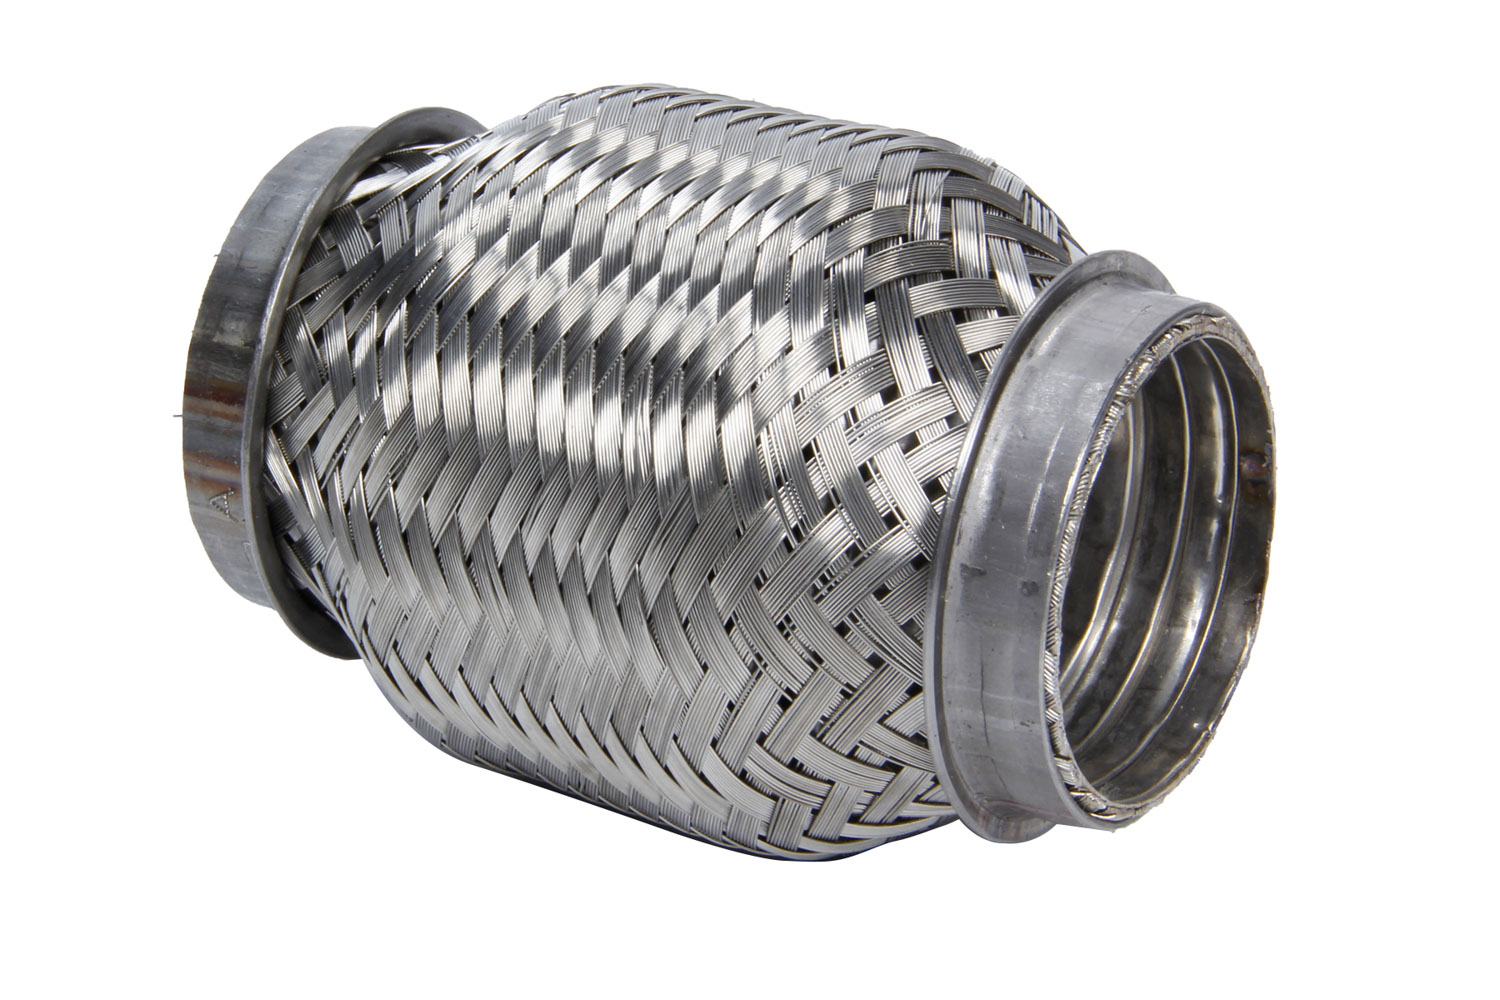 Vibrant 60804 TurboFlex Coupling 2.5 in Inlet//Outlet 4in Long